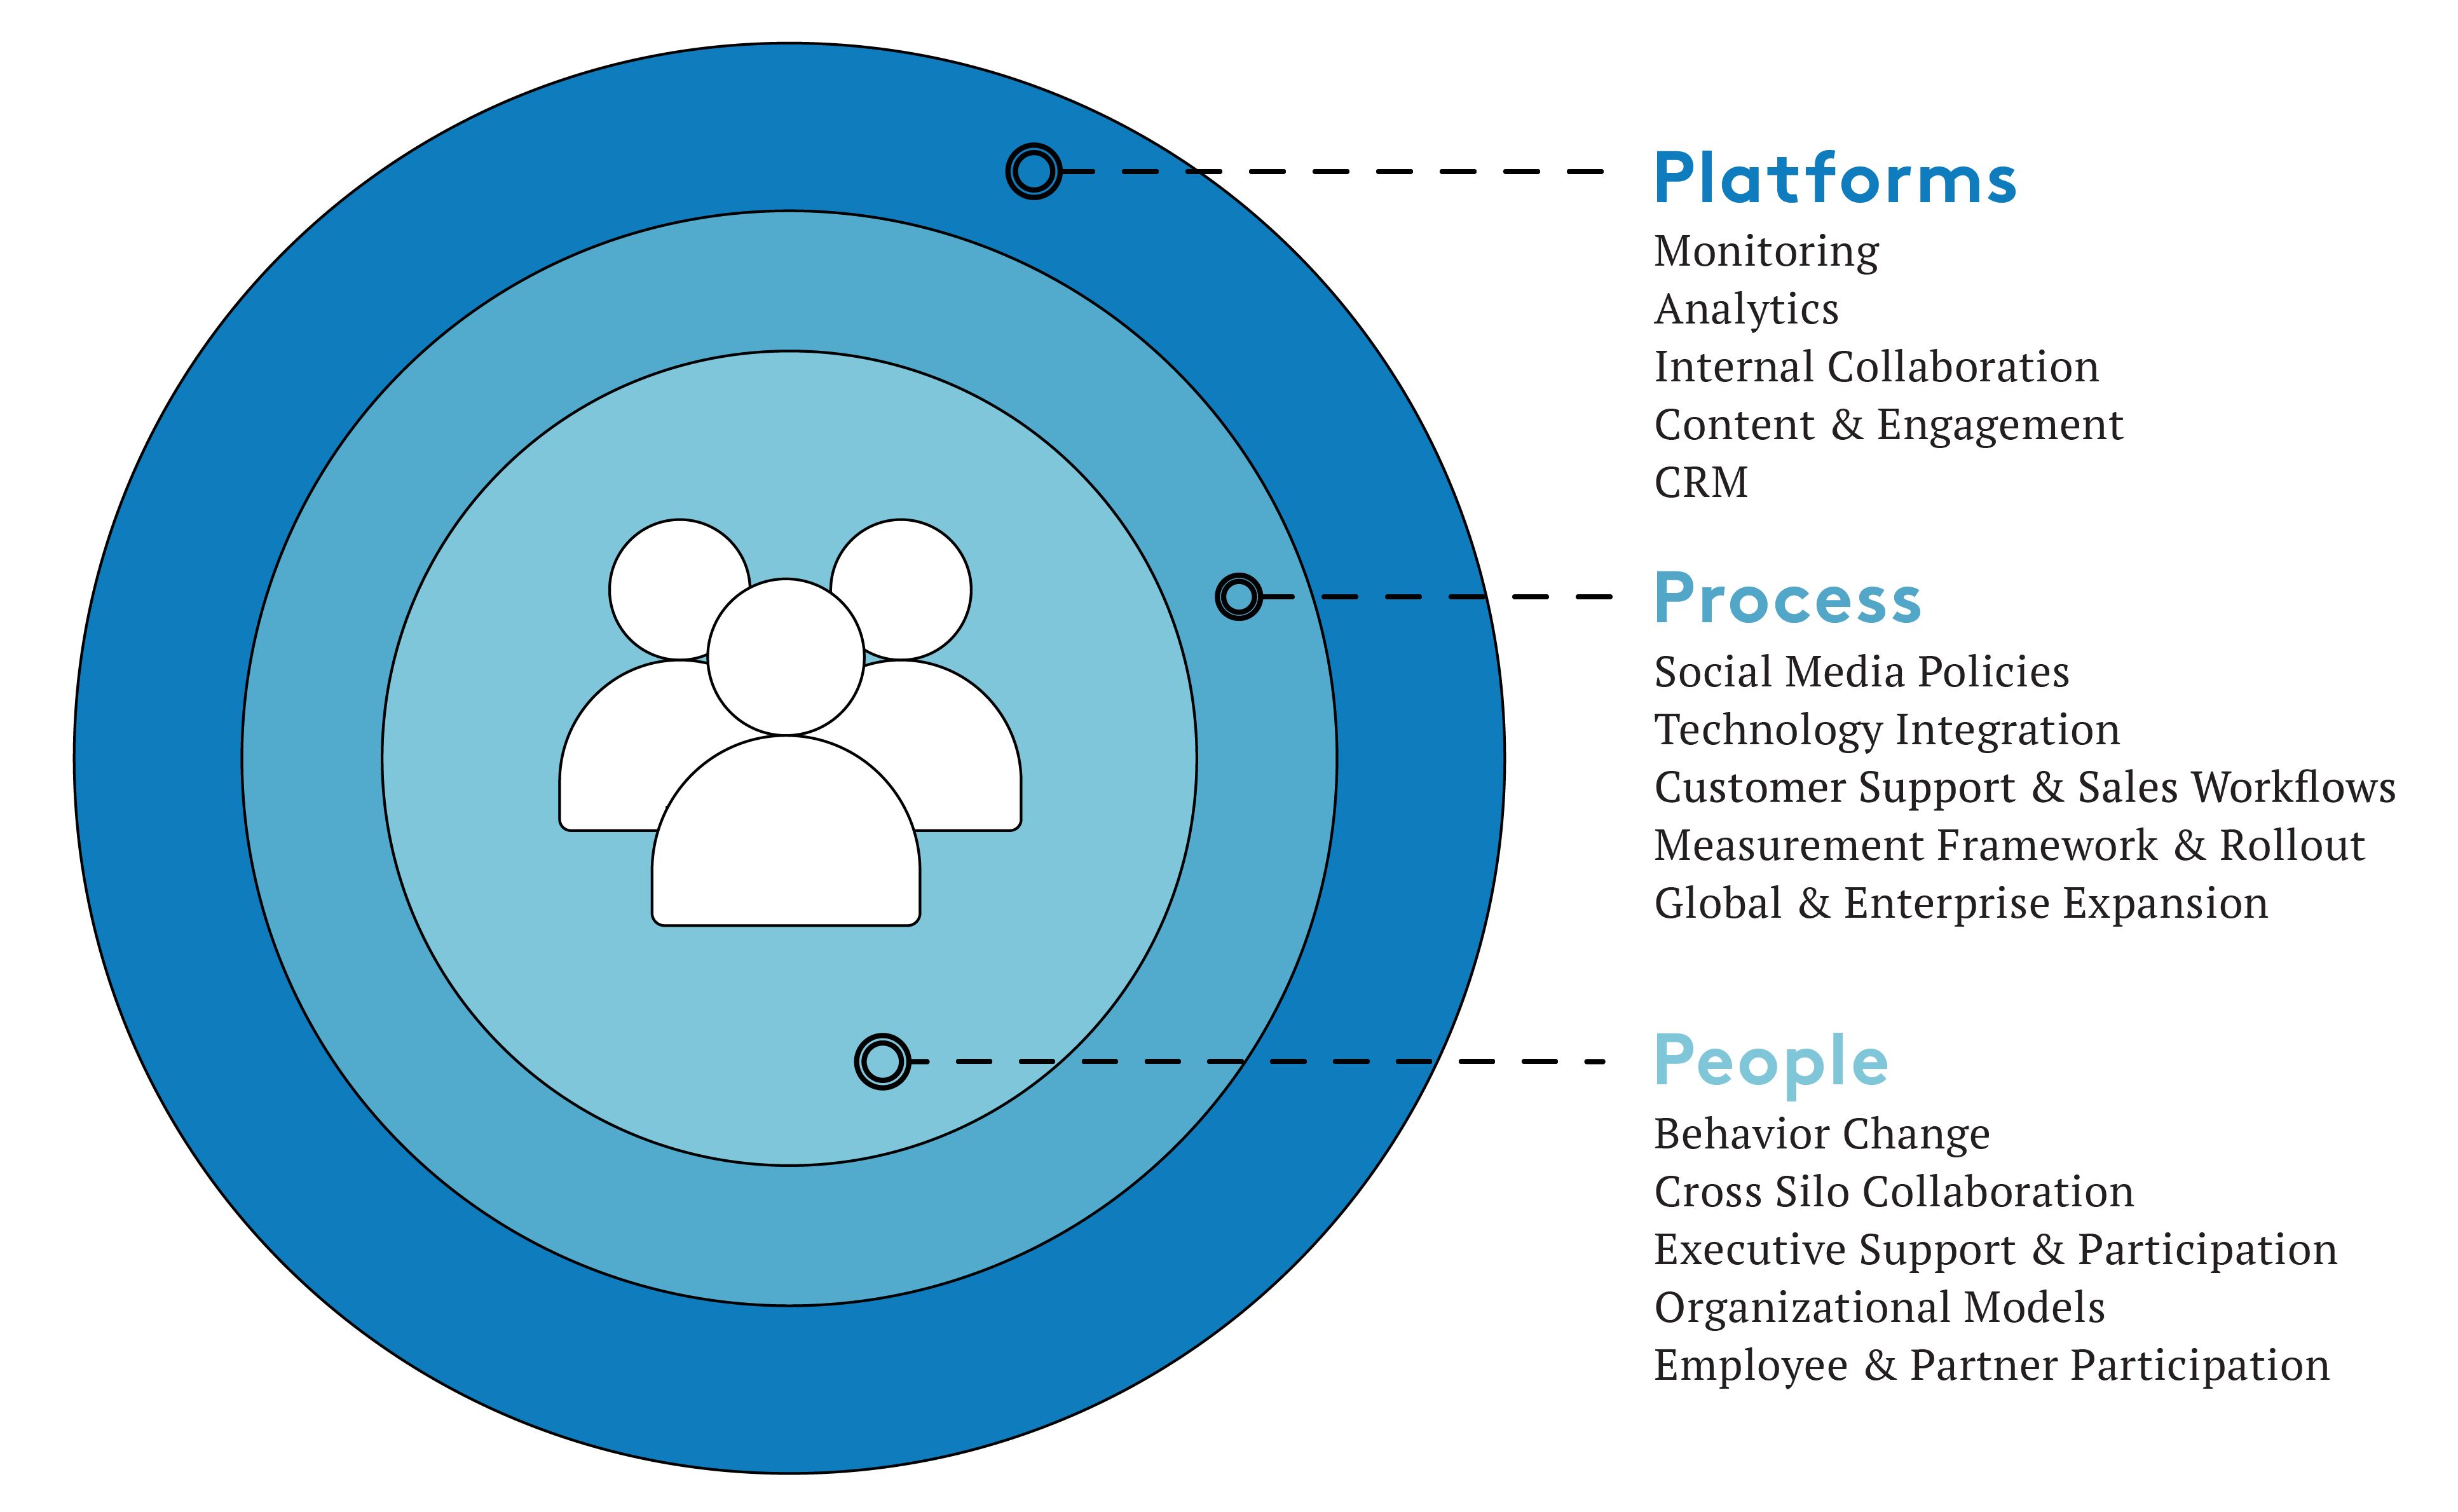 Fig 1 2 Putting People At The Center Of Digital Transformation Initiatives Helps Build A Digital Transformation Technology Integration Digital Marketing Plan